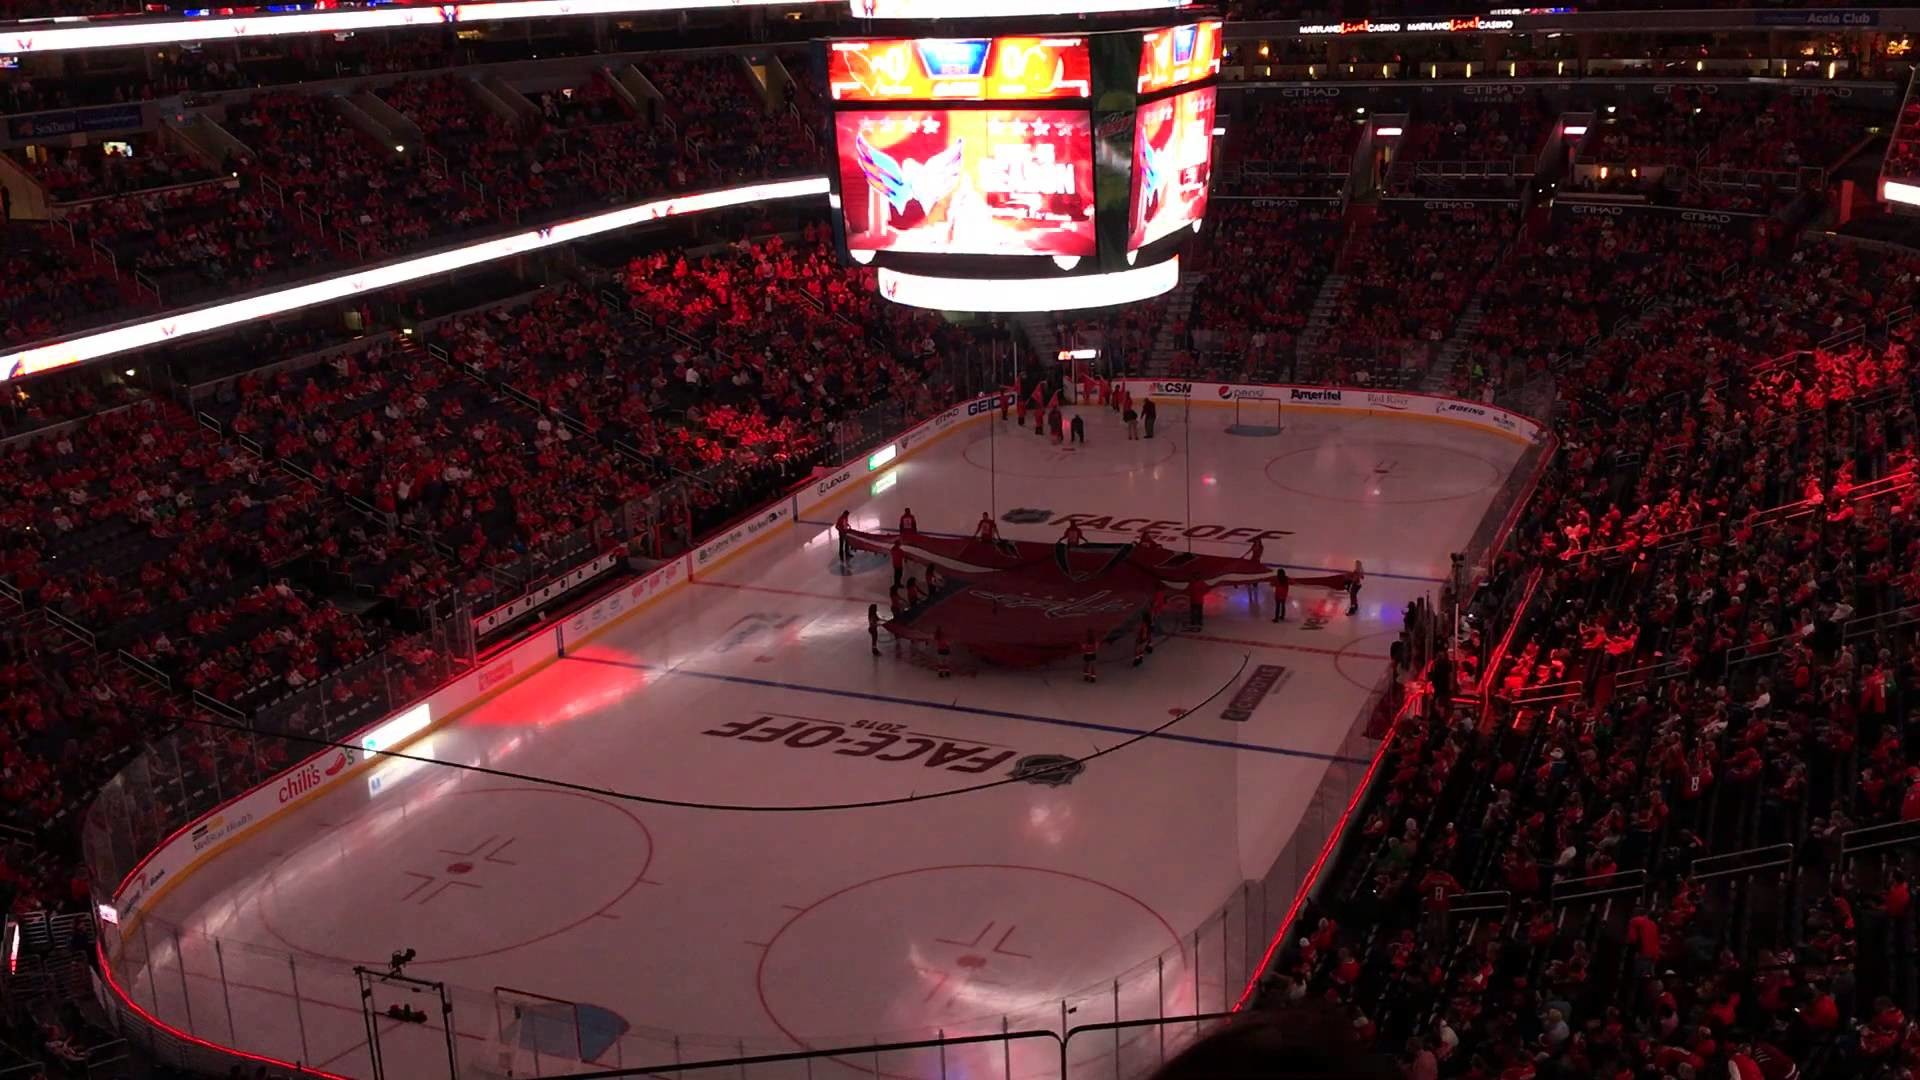 1920x1080 Washington Capitals: 2015-2016 Opening Night Introductions / Video